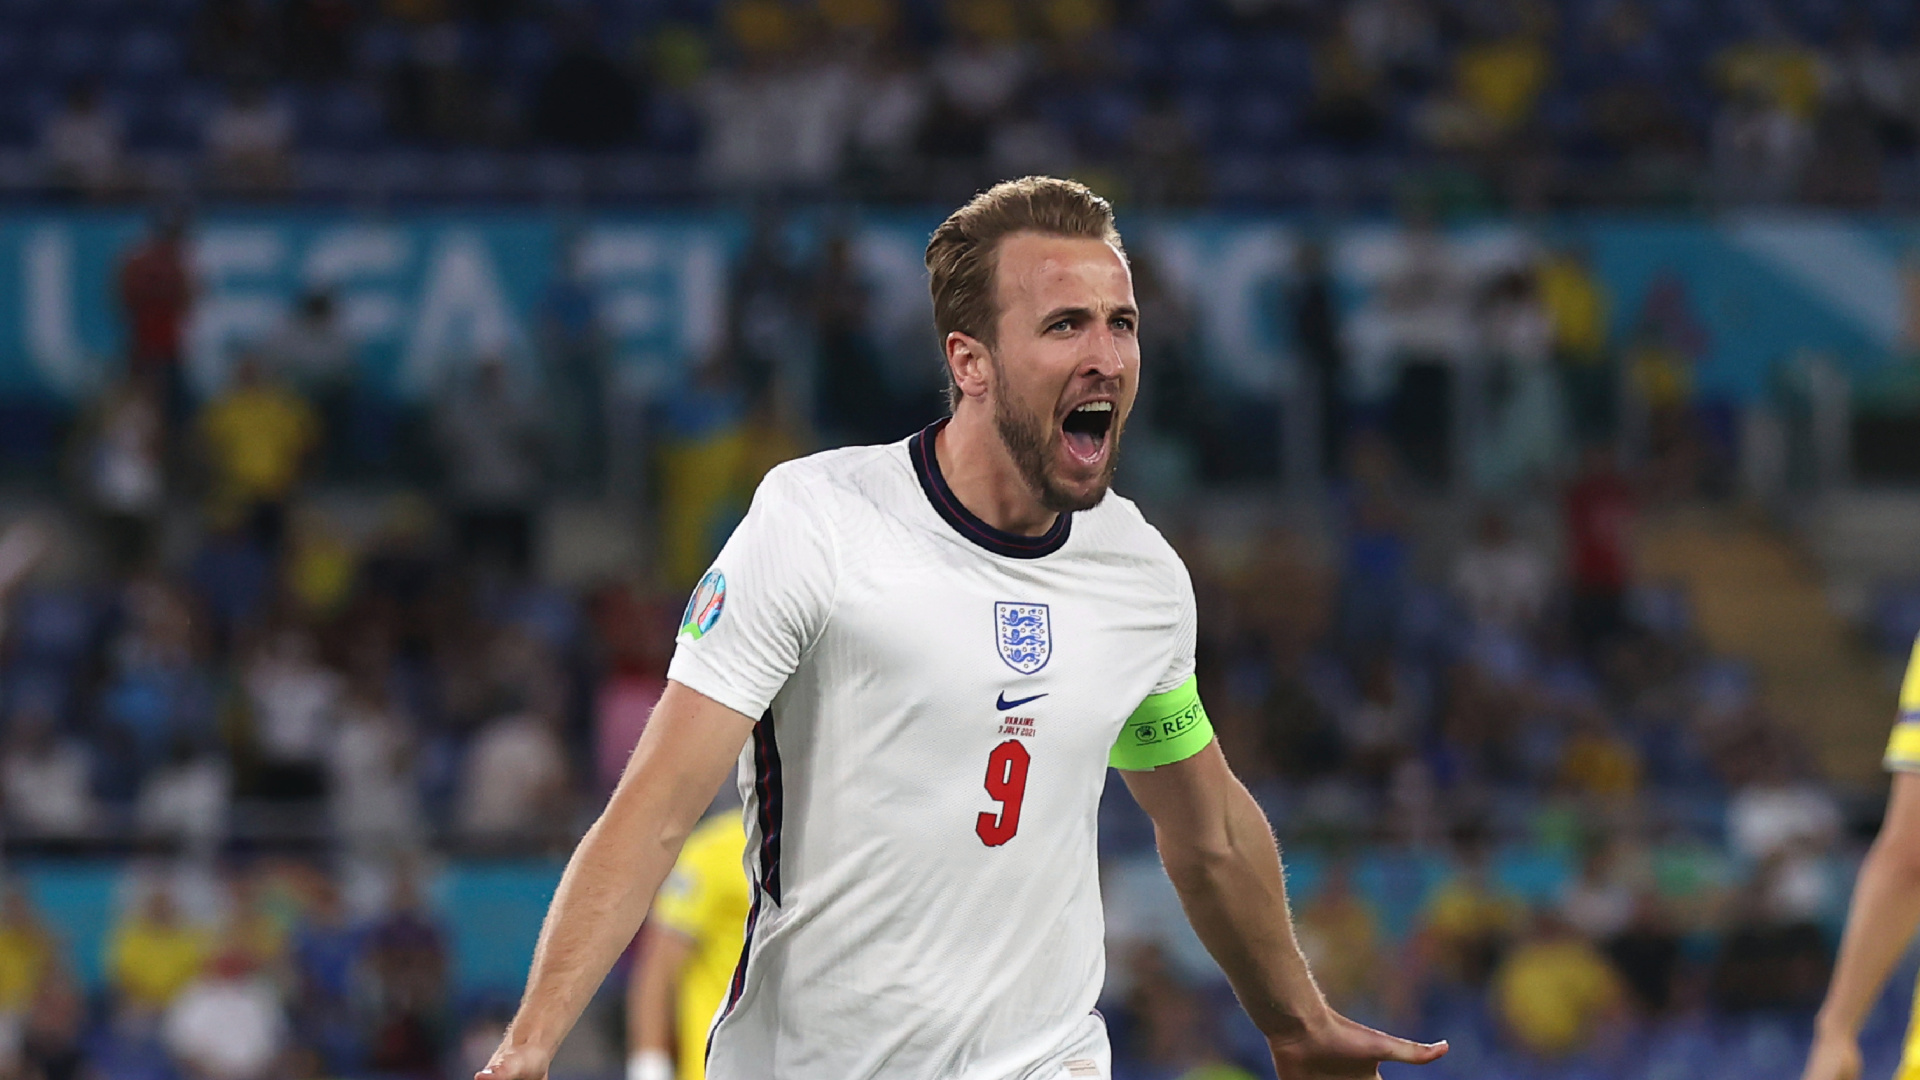 England slash records in Euro 2020 finals… take a look back at their Euro history